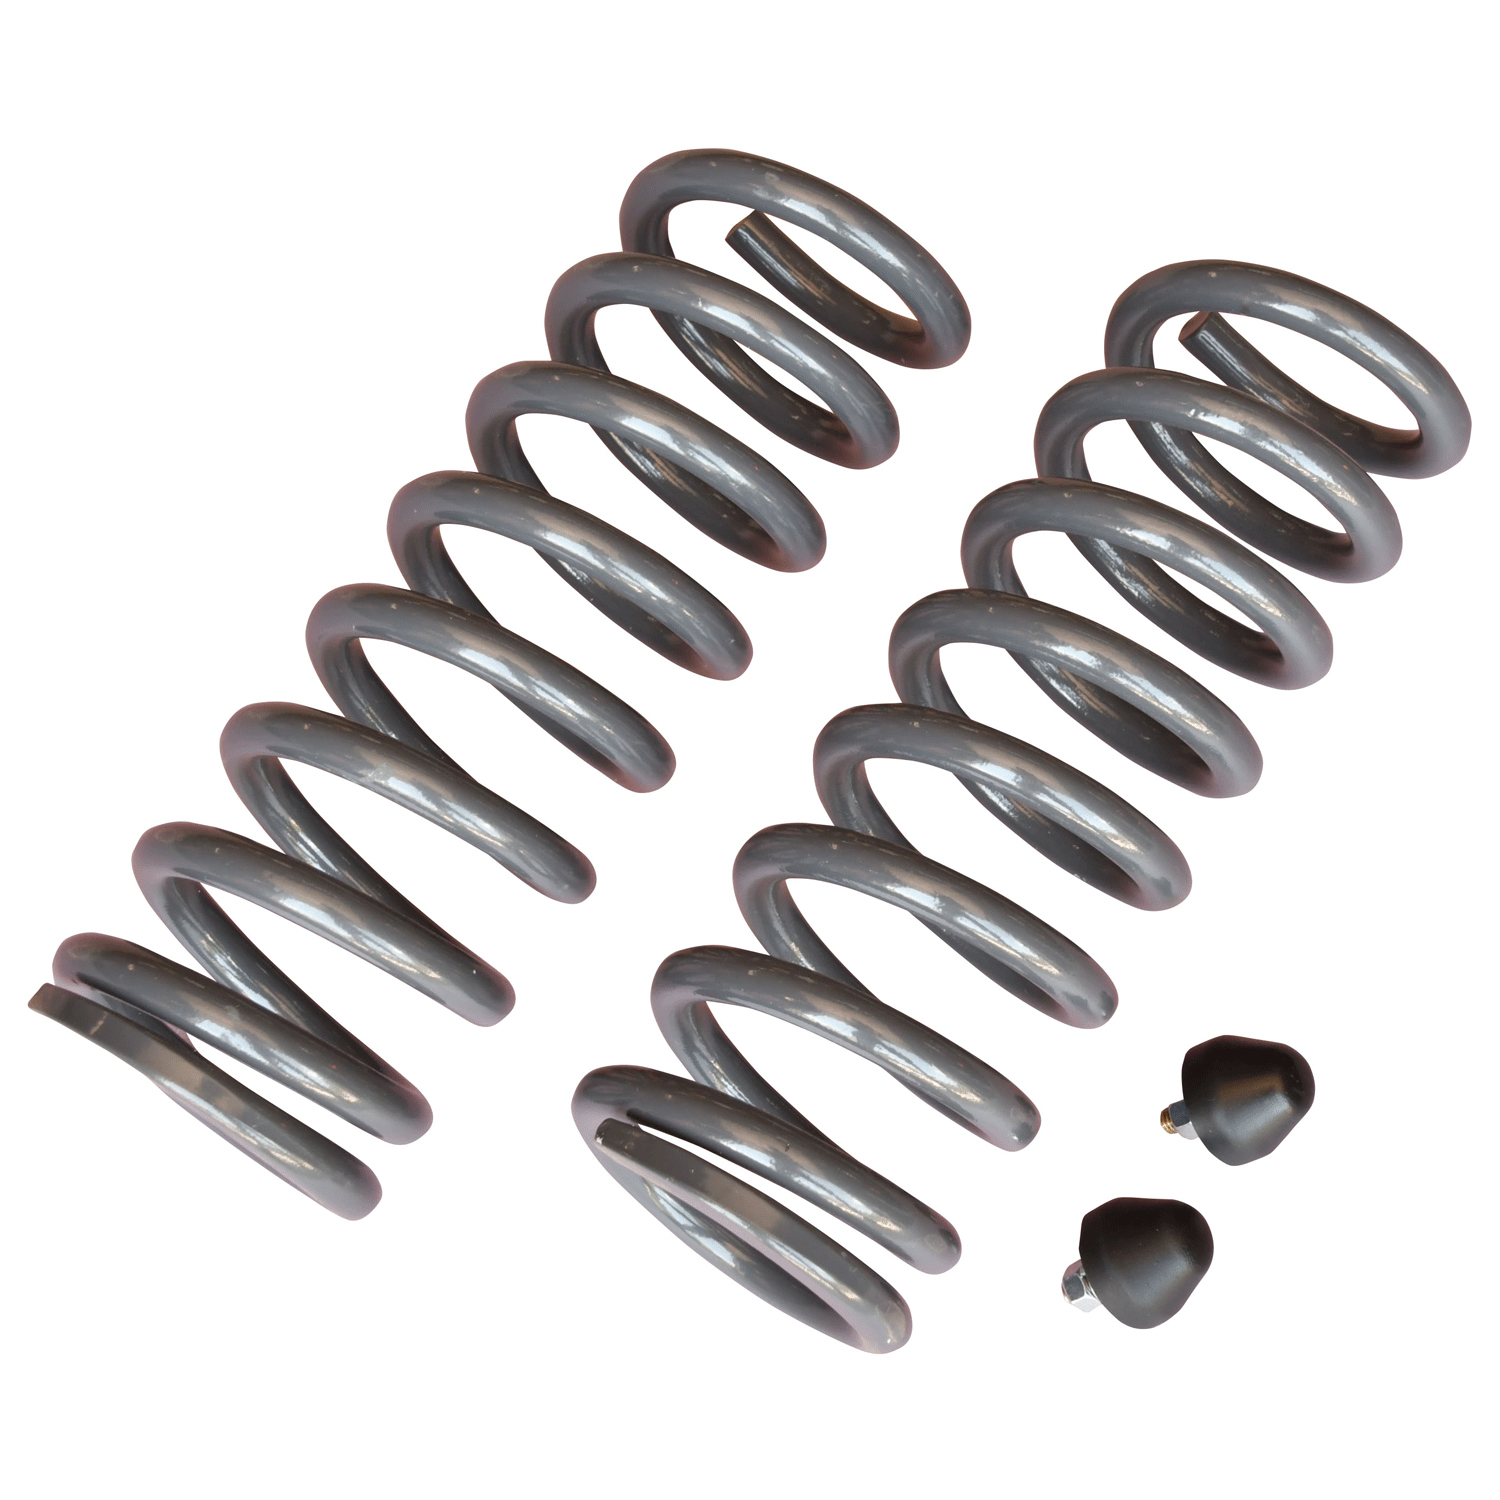 1967-1972 GM A-Body Front Lowering Coil Springs 2 in. Drop (Big Block)